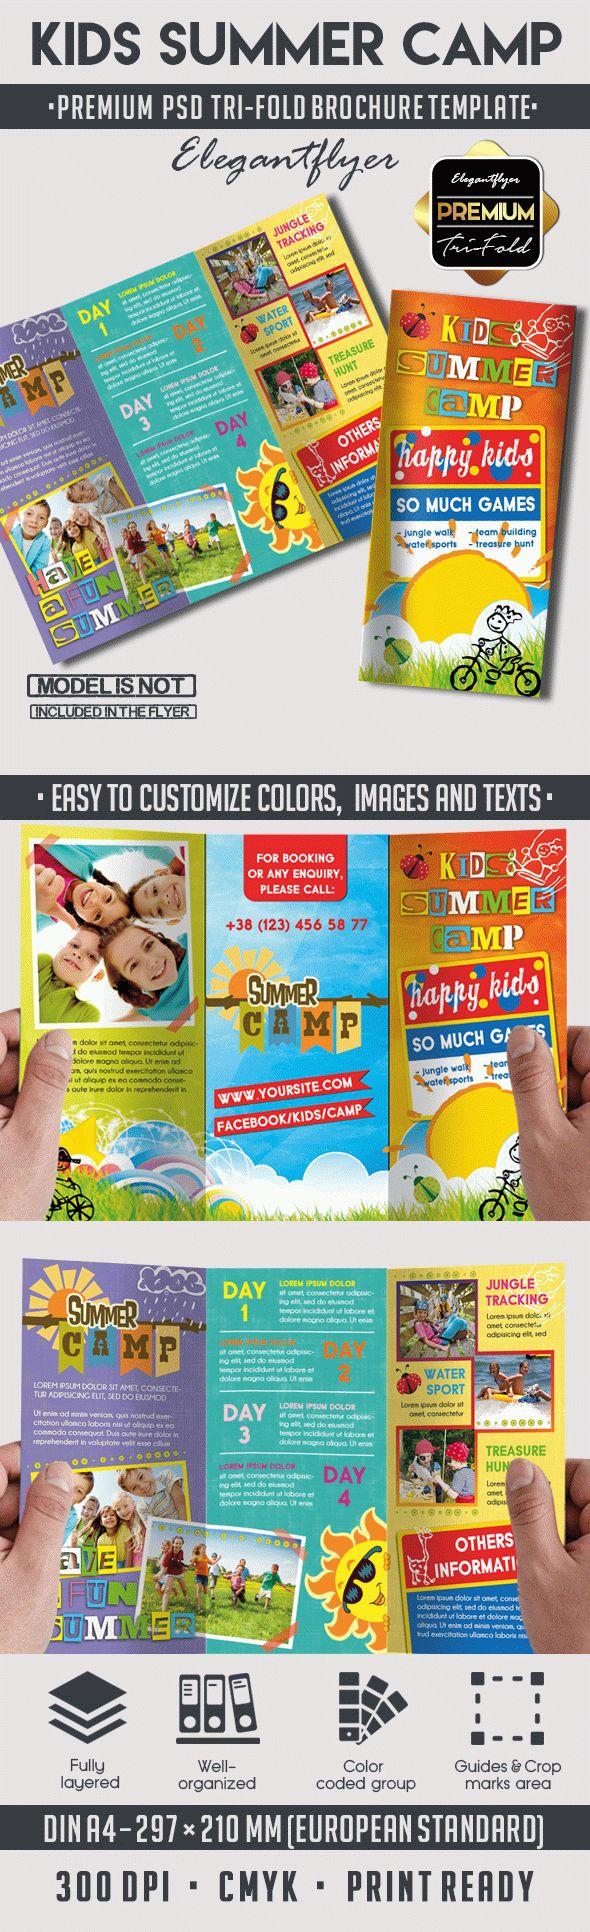 summer camp brochure template